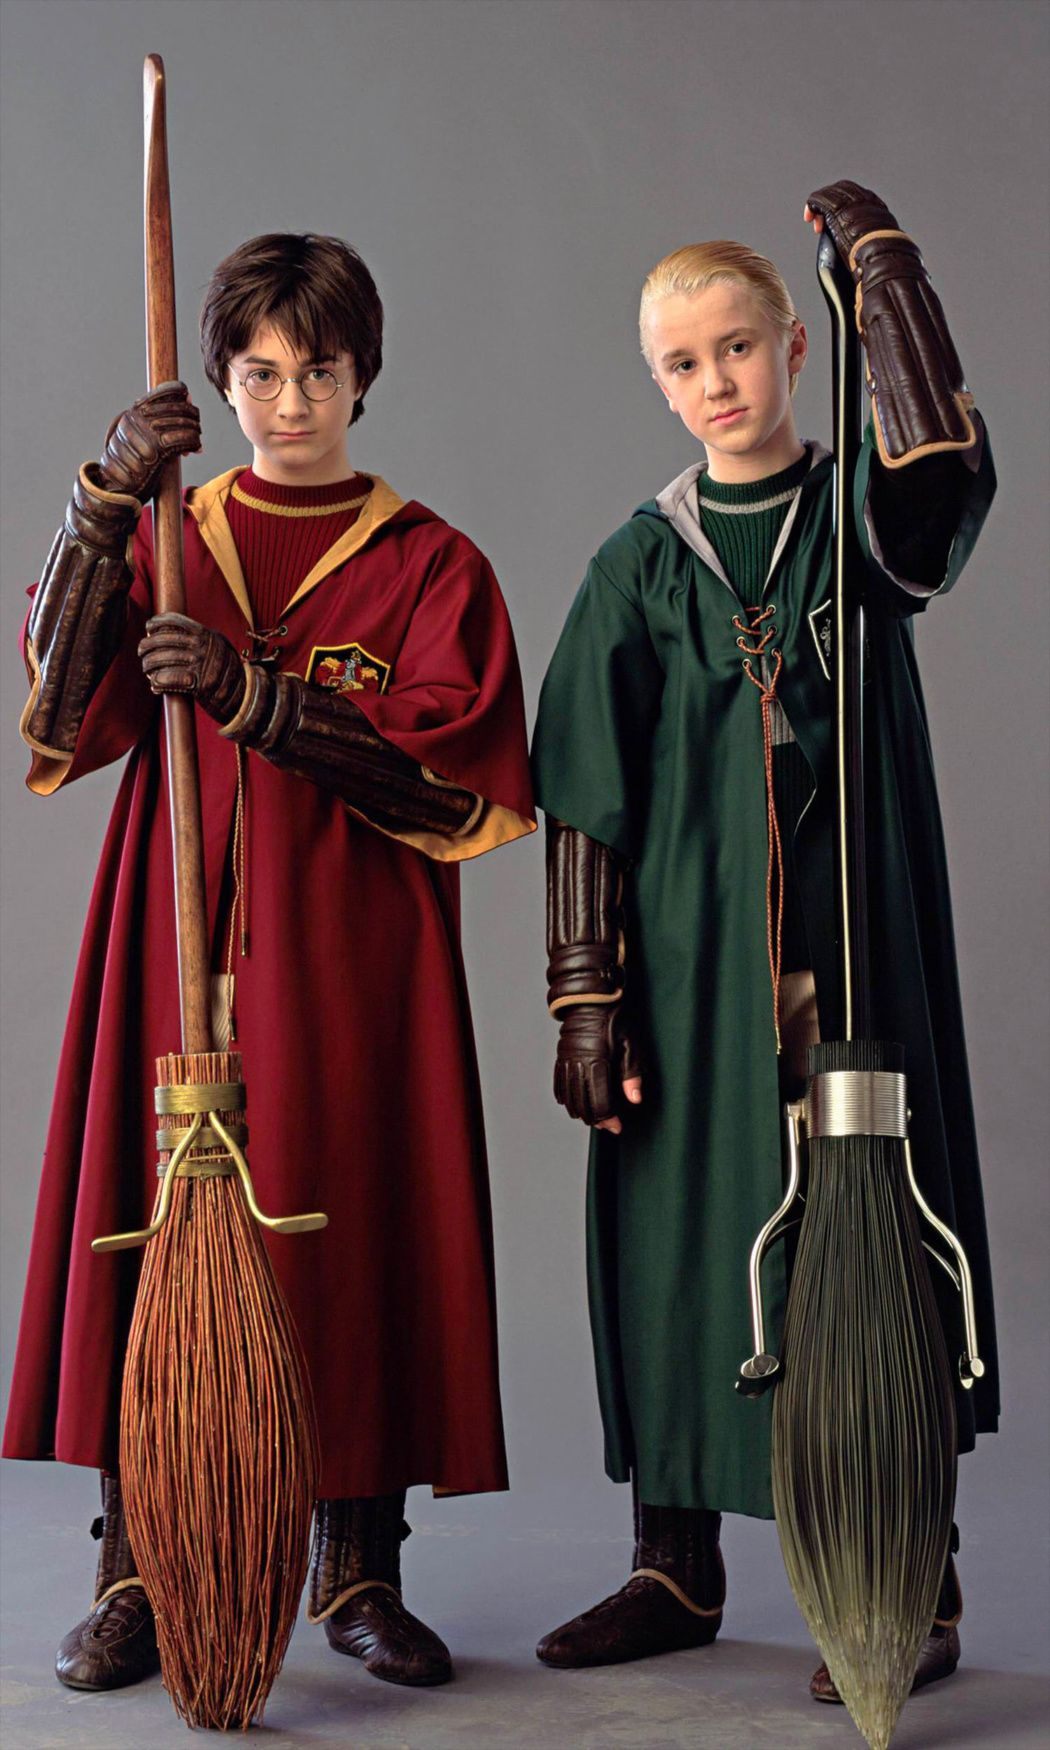 Portrait Of Harry And Draco In Quidditch Robes Harry Potter Quidditch Draco Malfoy Harry Potter Draco Malfoy